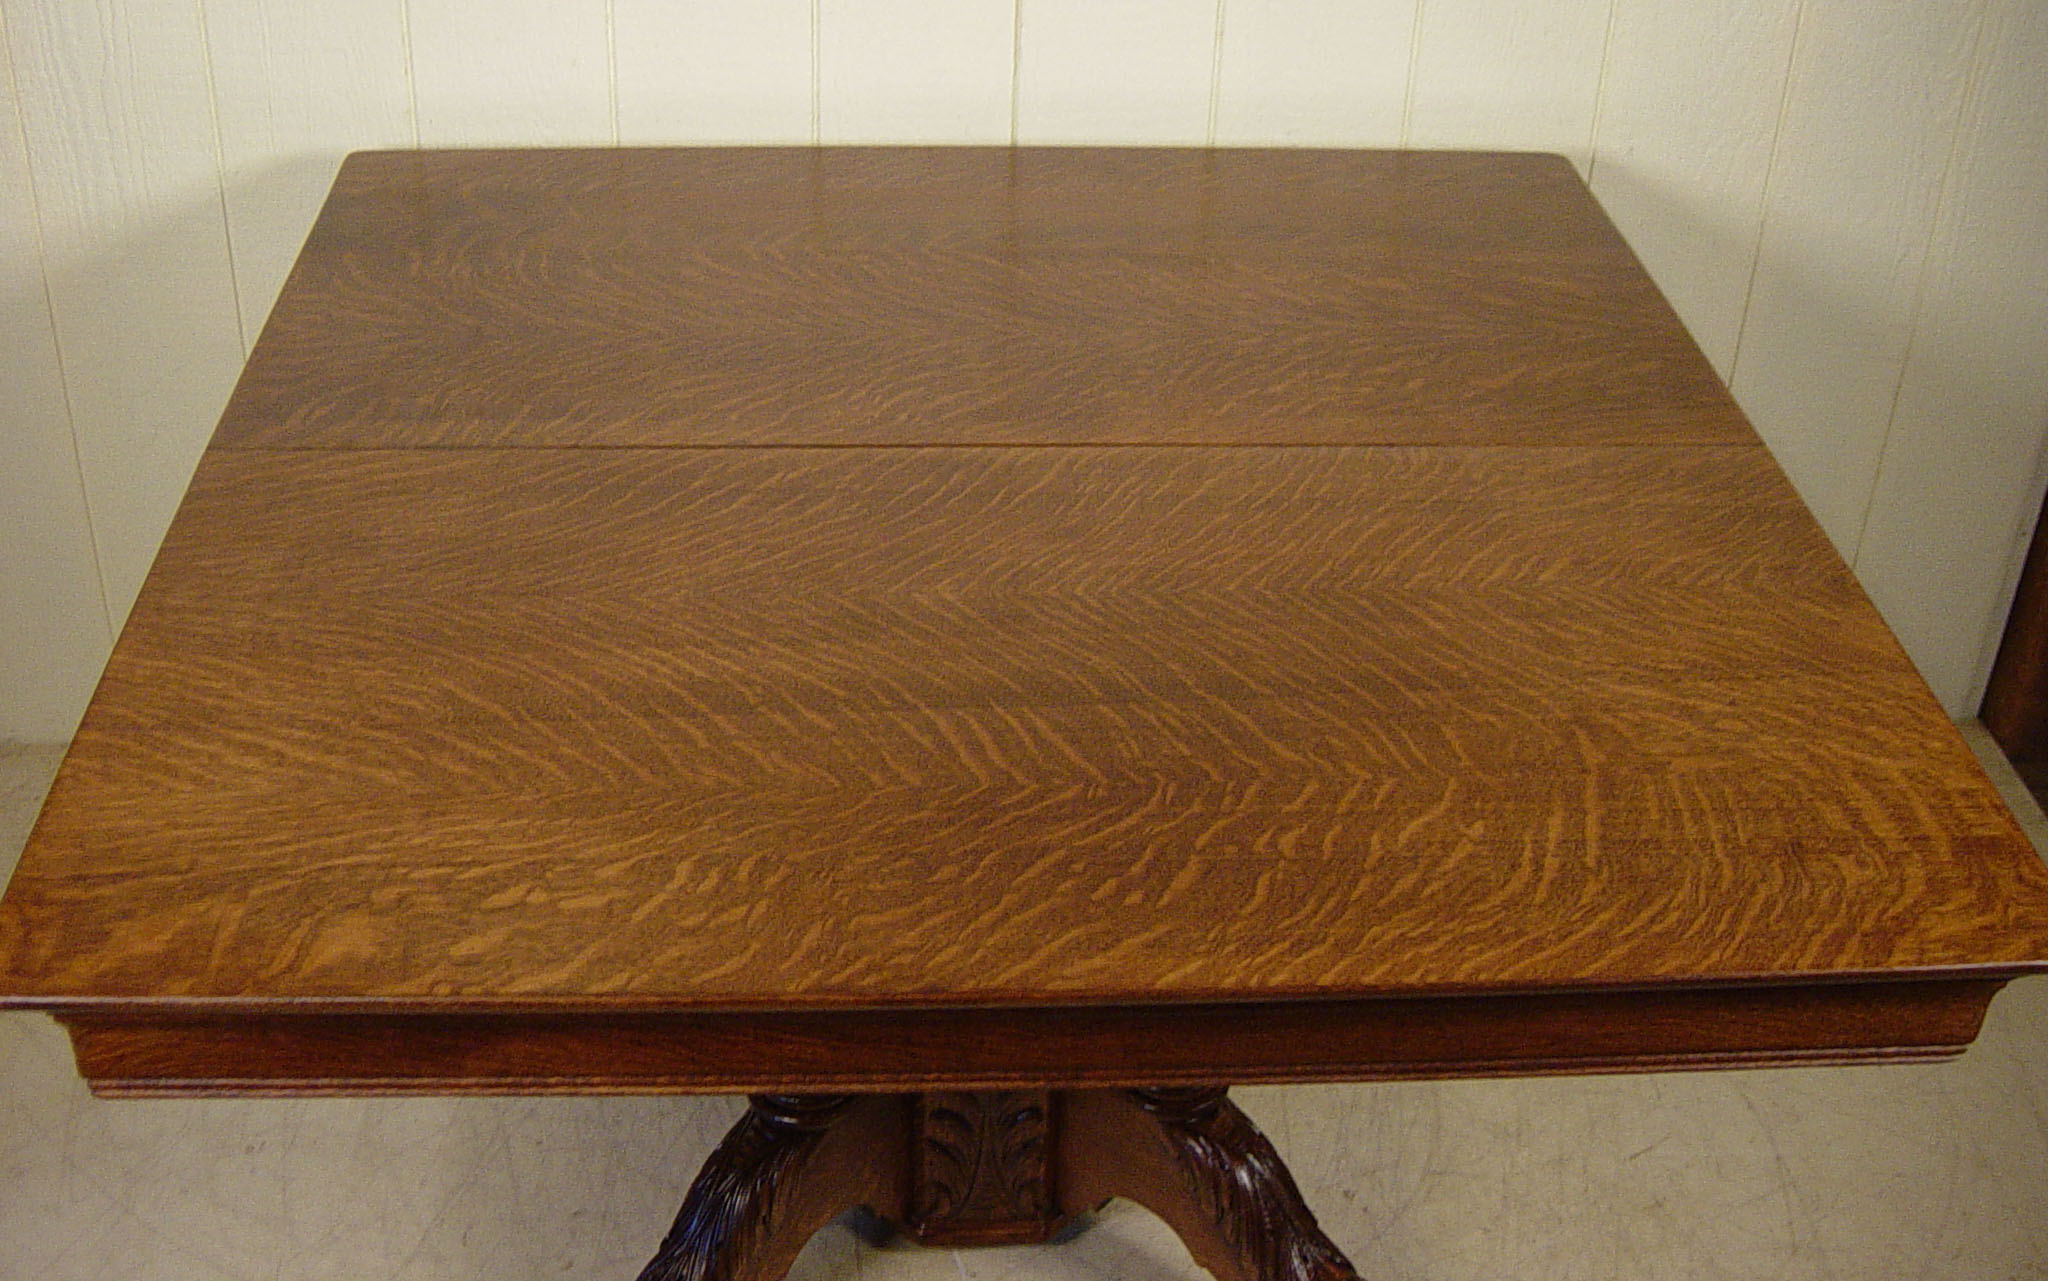 48 Square Oak Claw Foot Table with 4 12 original